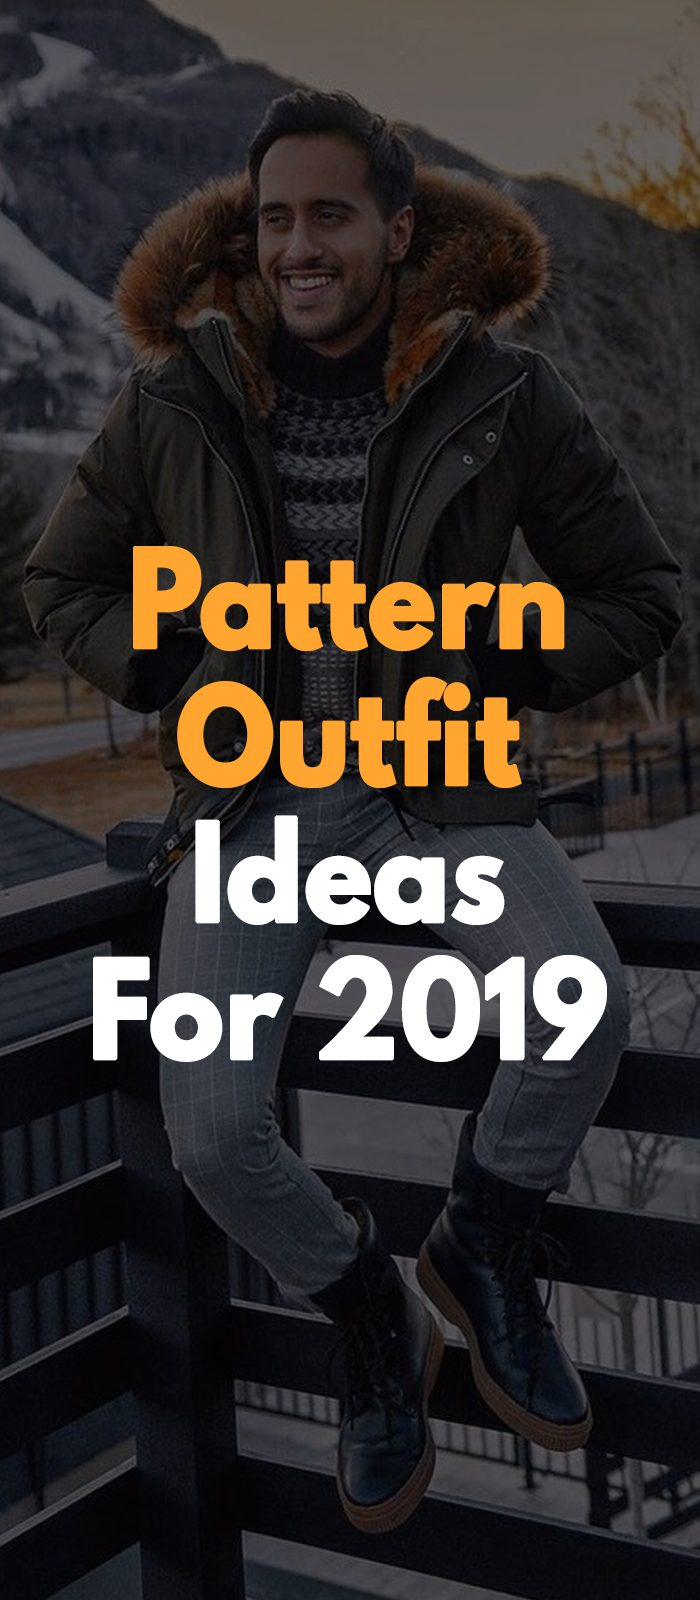 Pattern Outfit Ideas For 2019